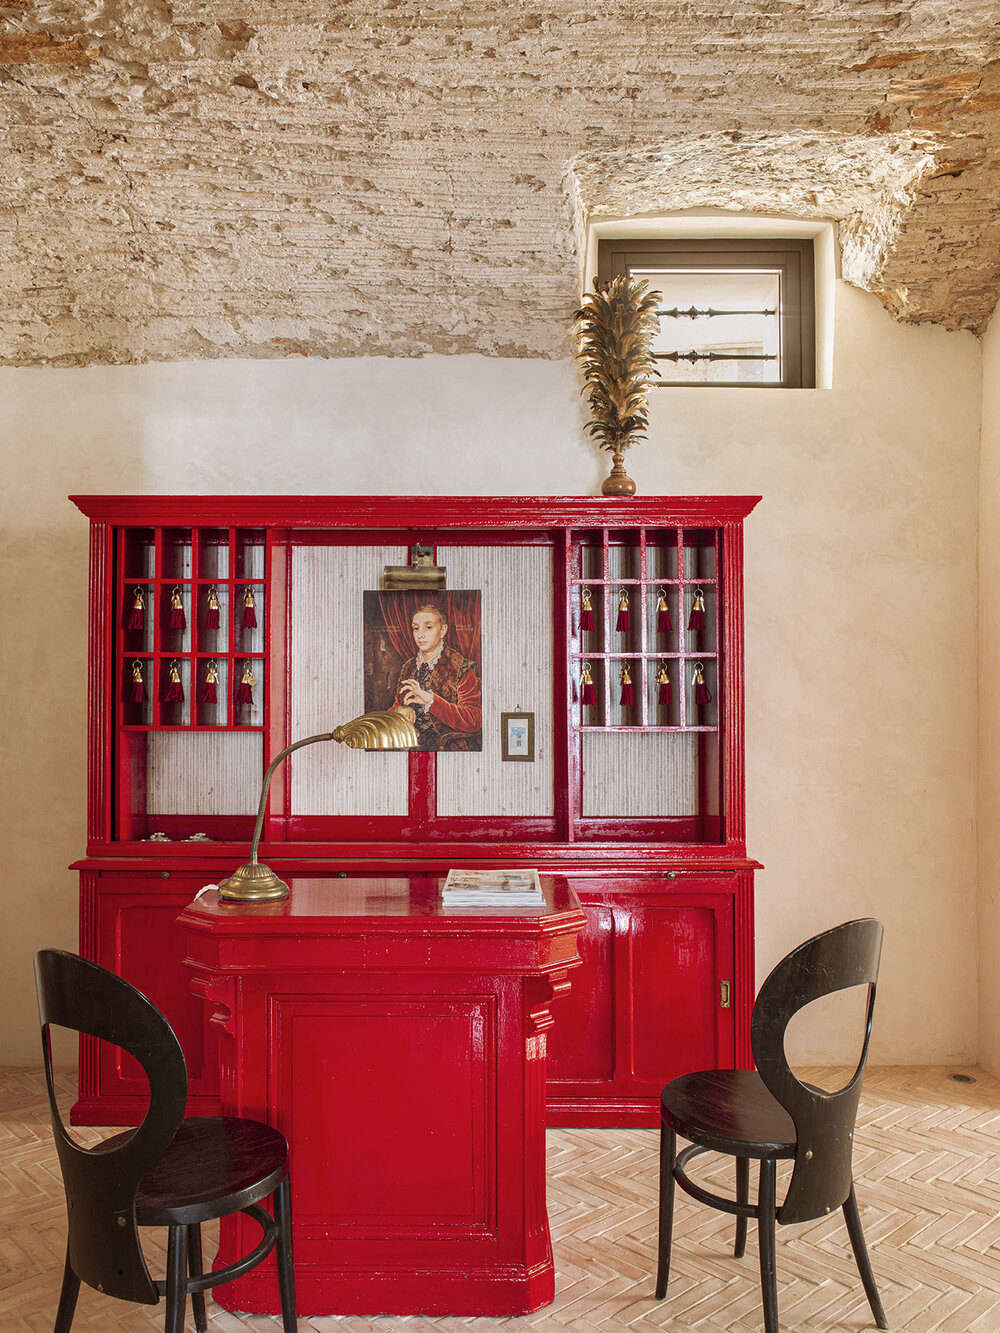 Just add red lacquer: the front desk was created from two vintages pieces renewed with glossy paint. The surfaces here range from newly laid herringbone brick to freshly plastered walls and a ceiling preserved in its excavated state.